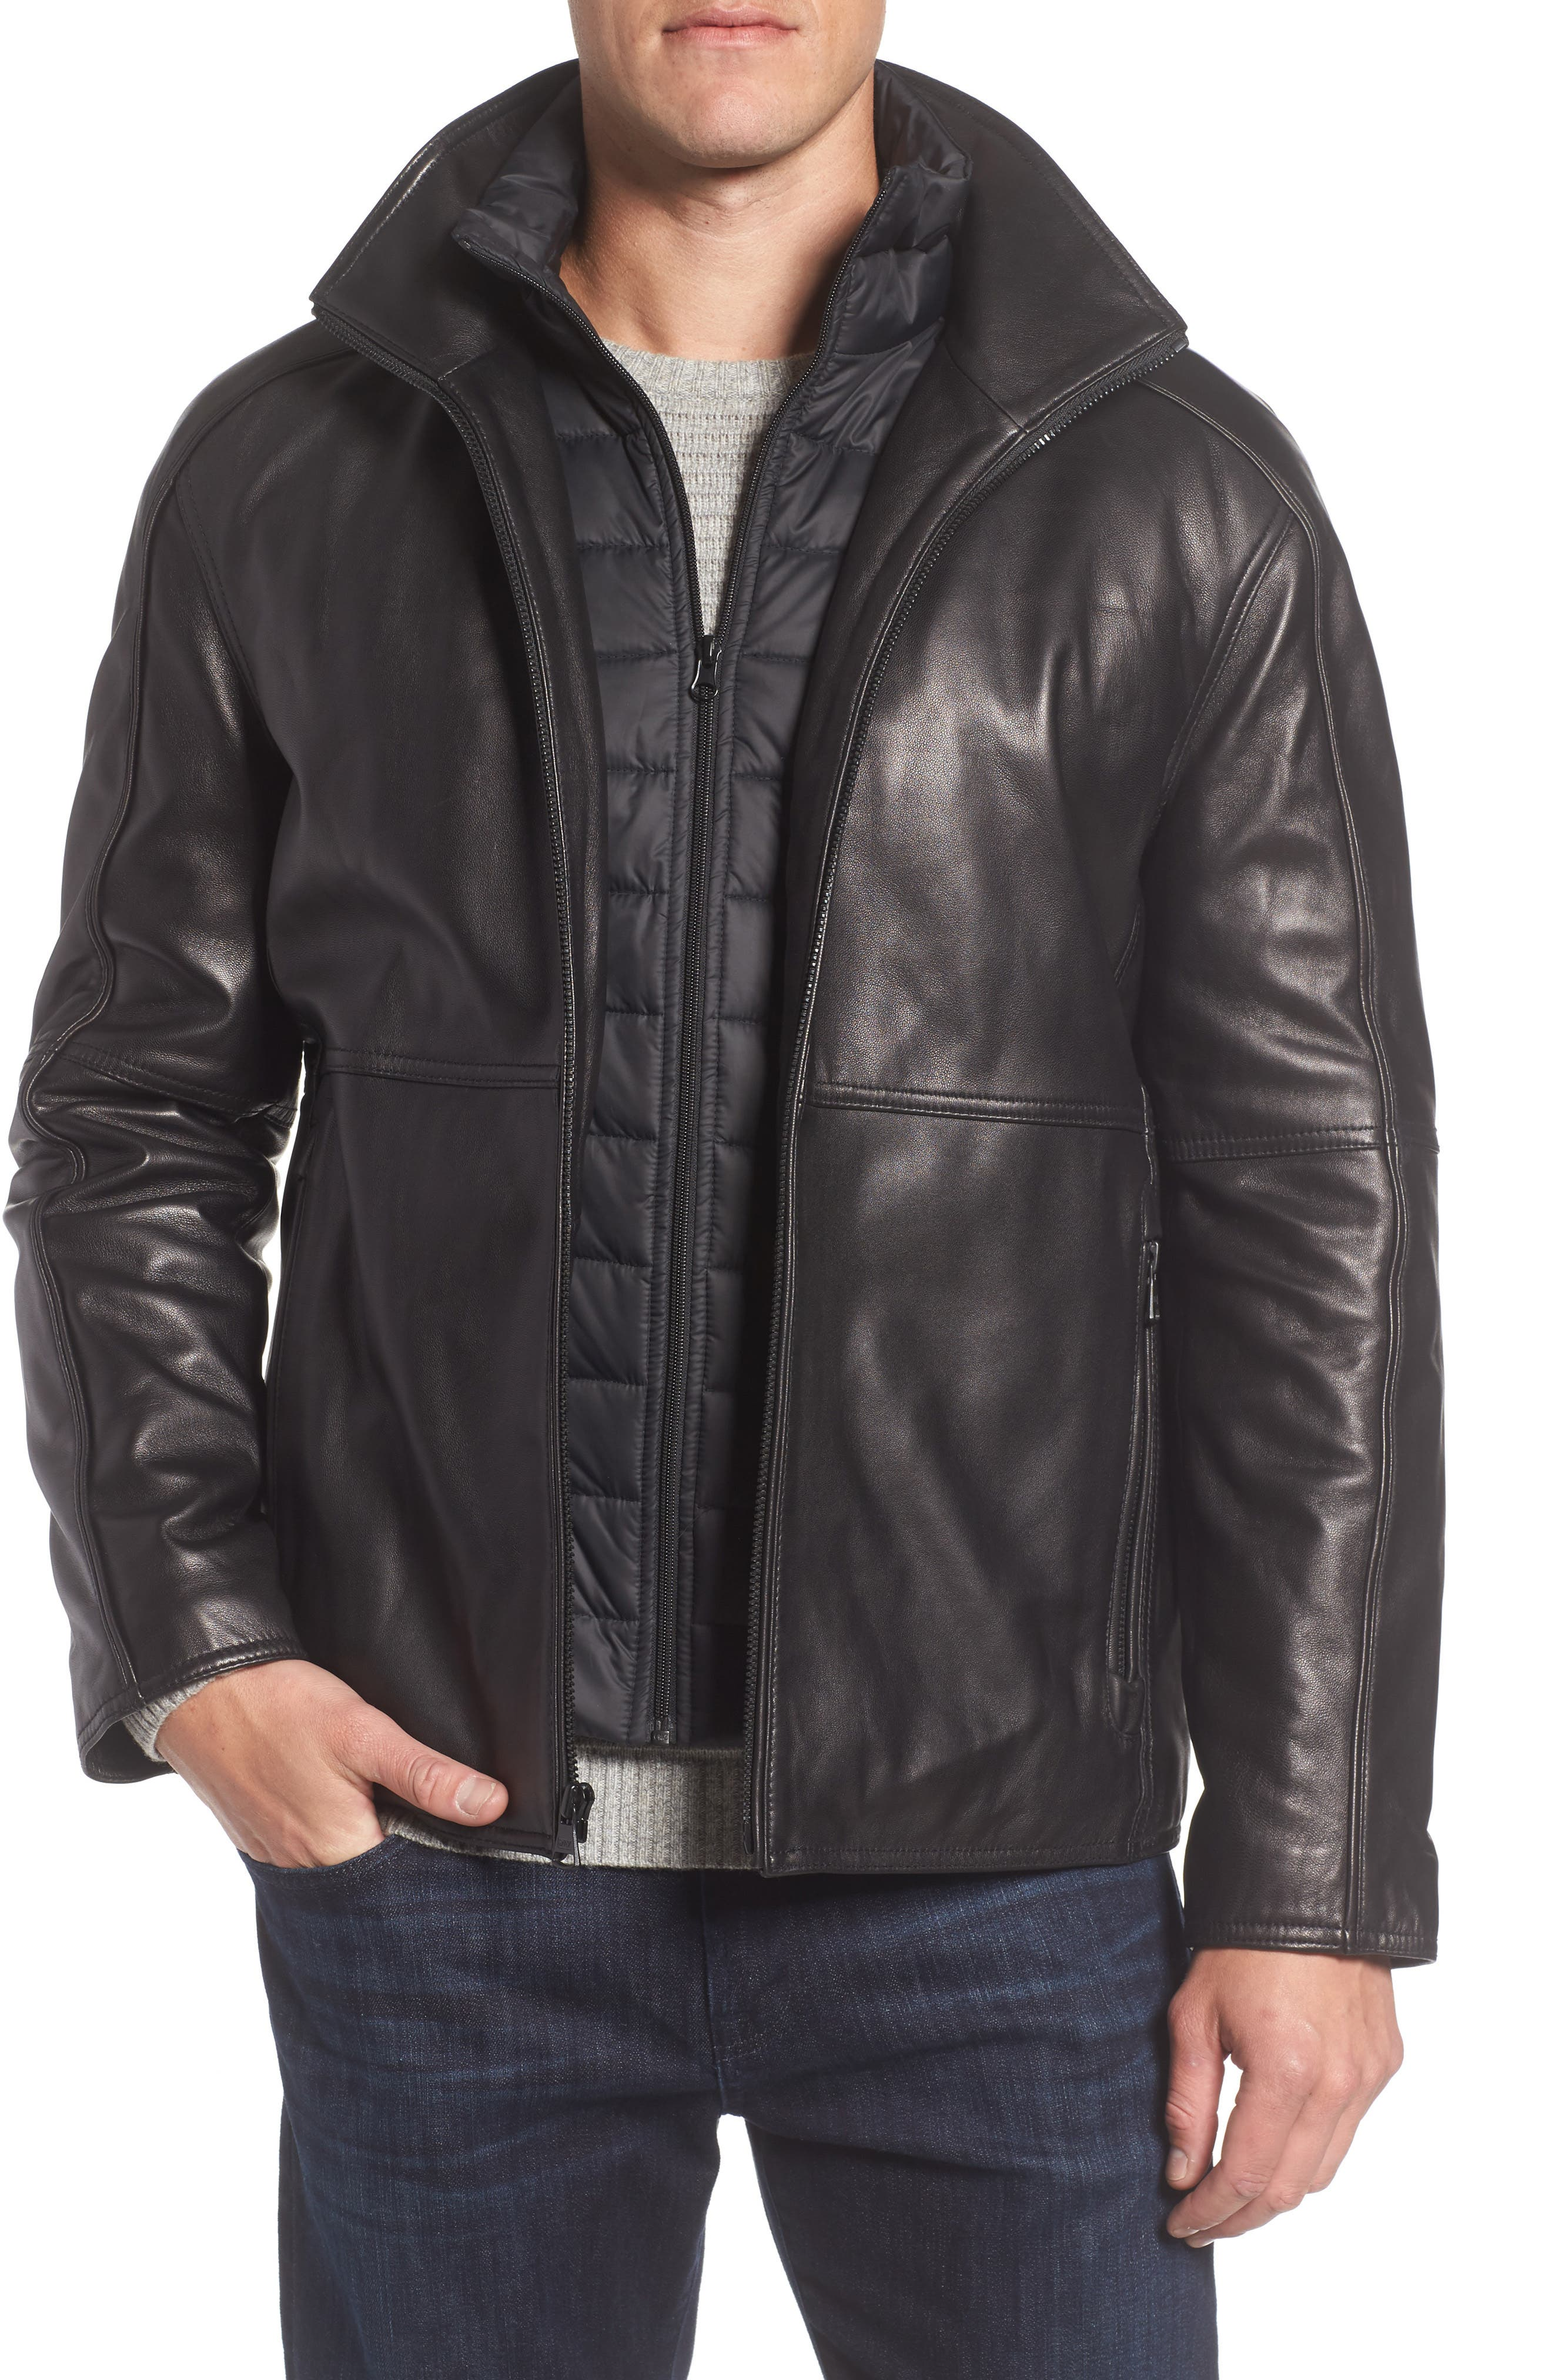 Leather Jacket with Quilted Insert,                             Main thumbnail 1, color,                             Black